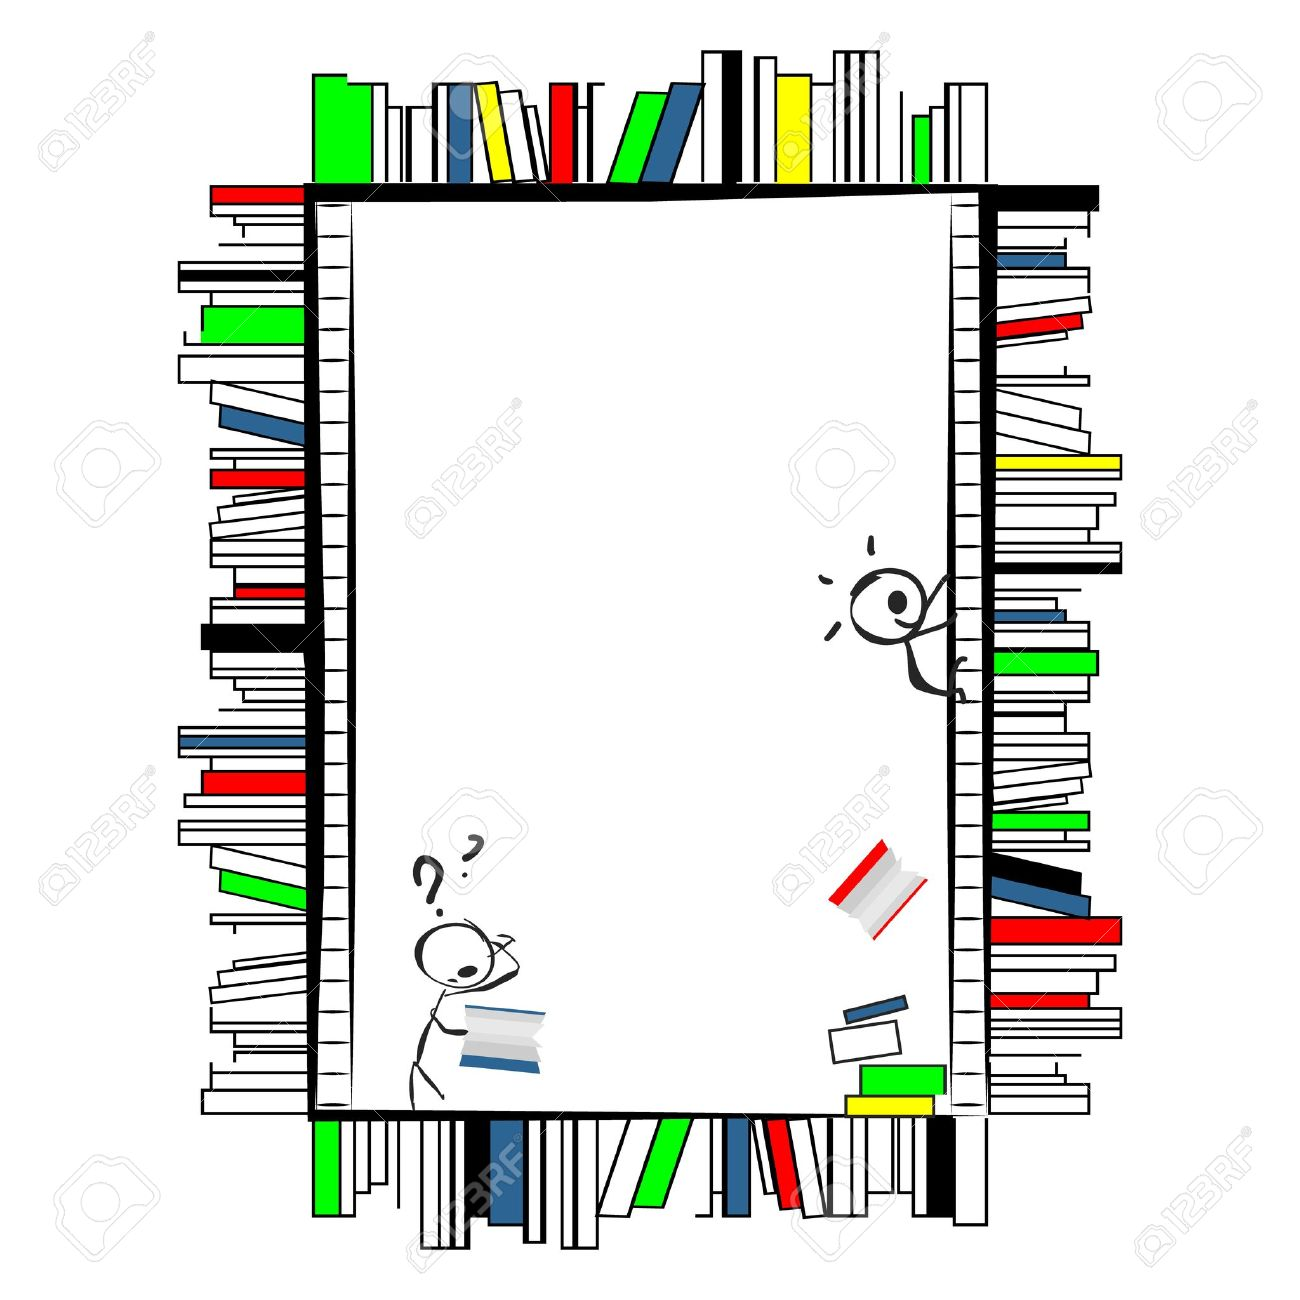 Funny cartoonish frame, made of books like shelves in library, with ladders  Two little doodle characters, one on ladder throwing the books down and other reading them Stock Vector - 12851924